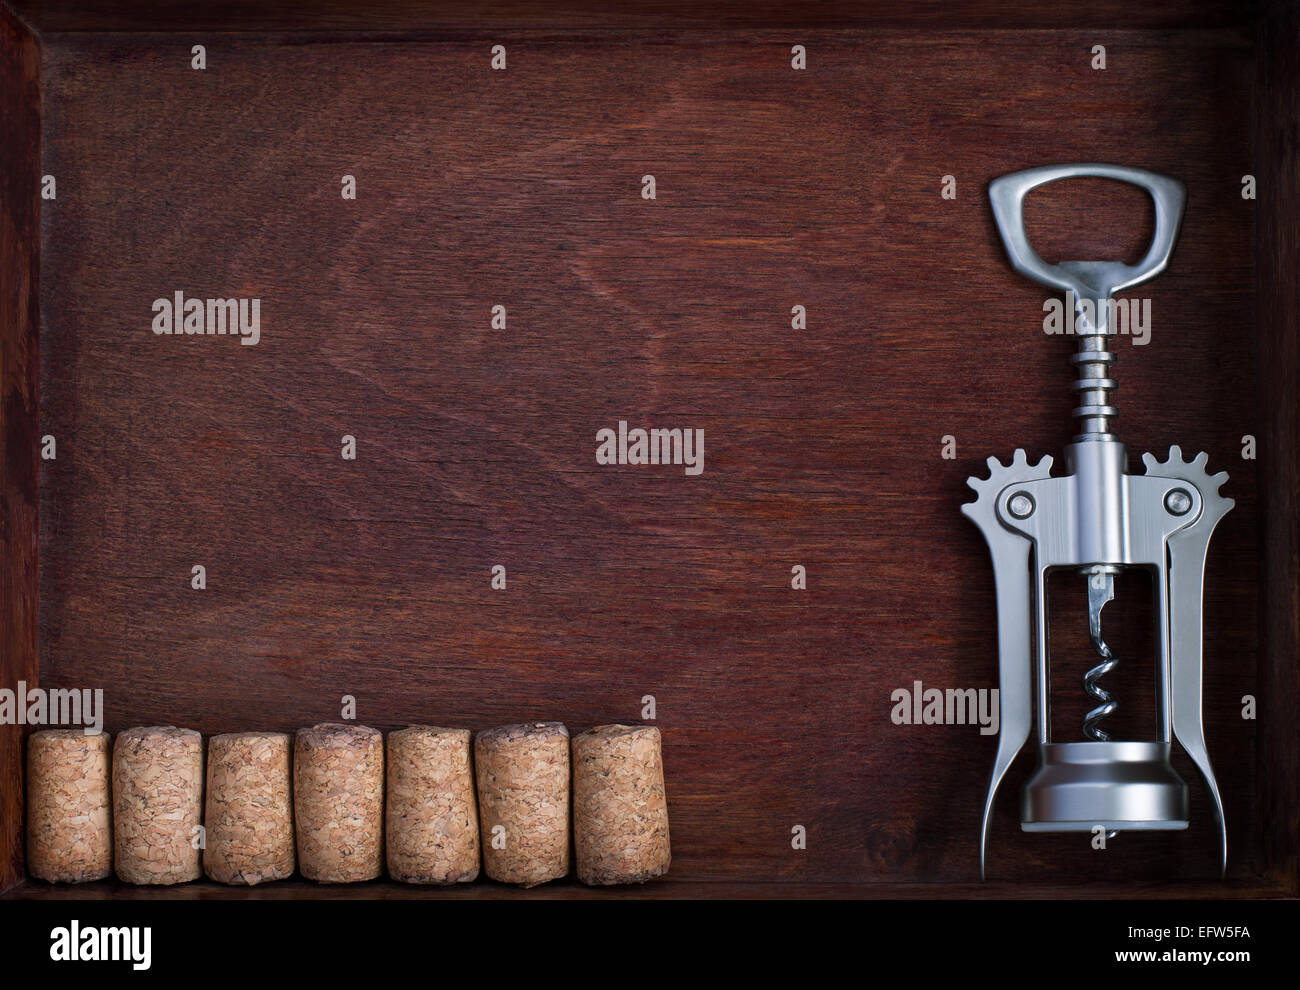 Corkscrew and a row of identical wine corks into dark box - Stock Image